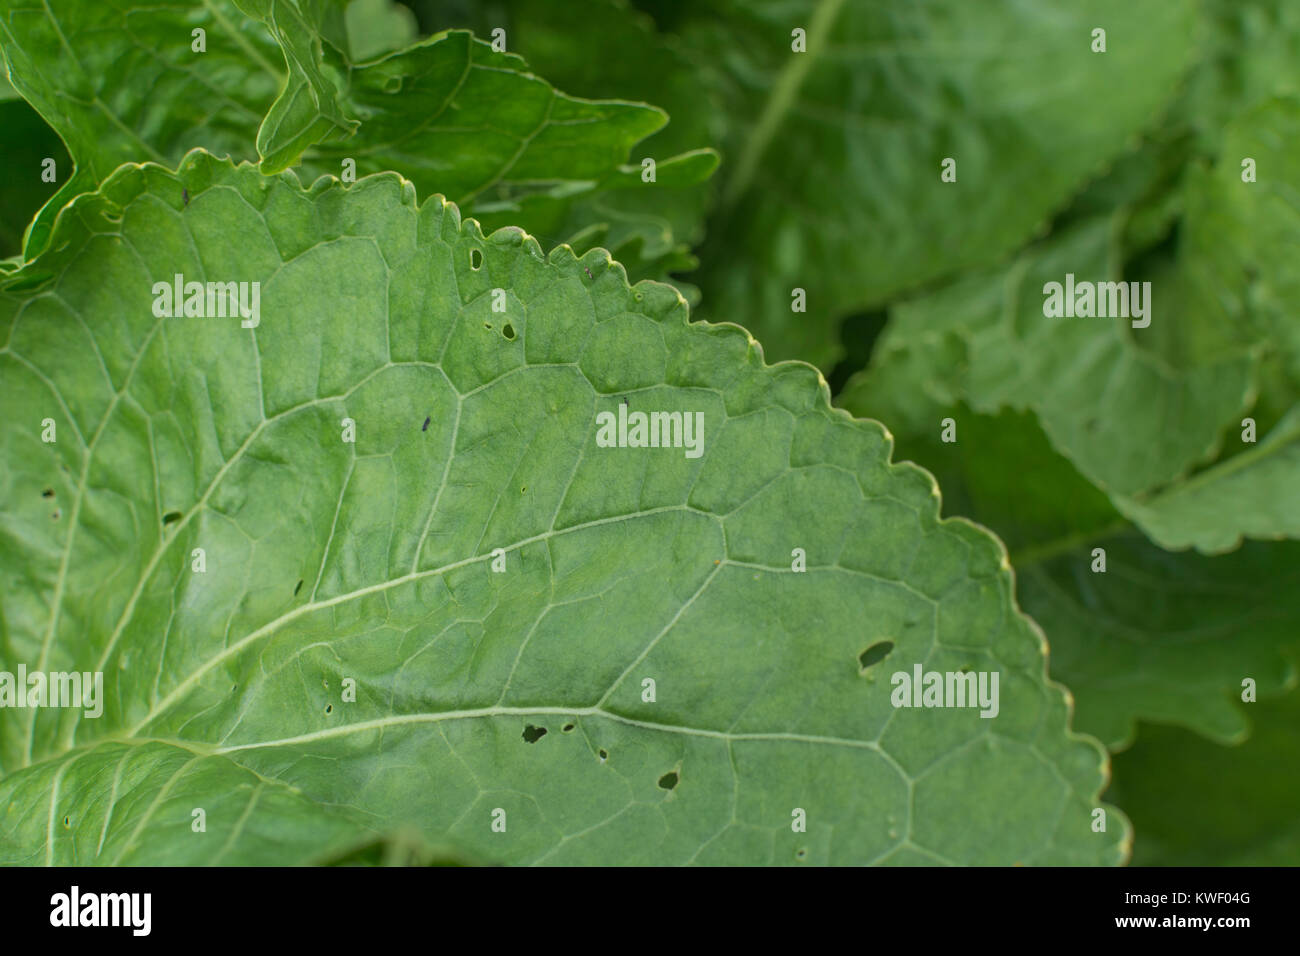 Close-up of the green leaves / foliage of Horseradish [Armoracia rusticana] - the condiment used with beef. - Stock Image